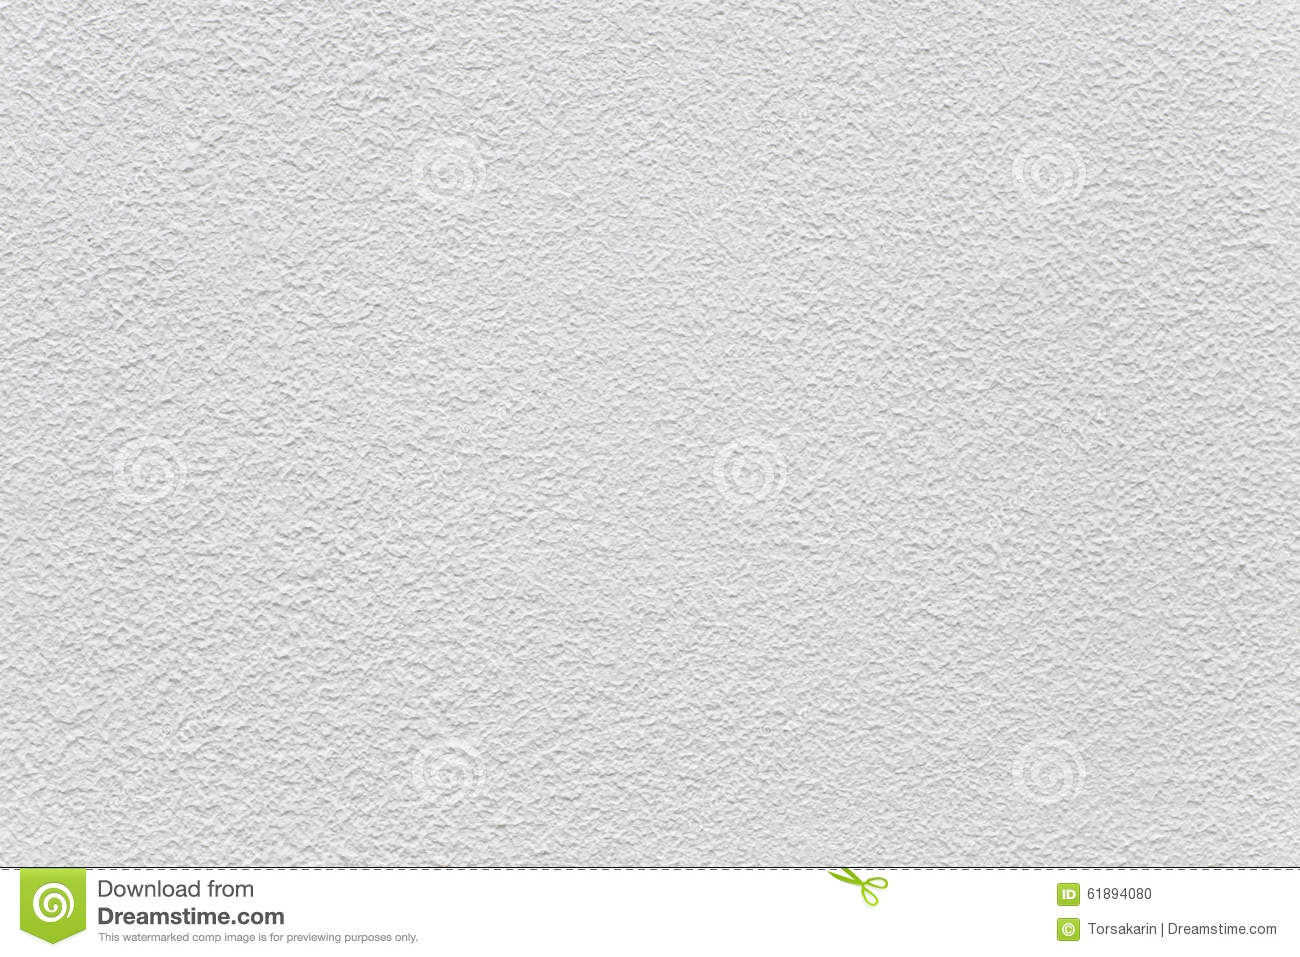 Wall paint texture seamless - Background Cement Painted Seamless Texture Wall